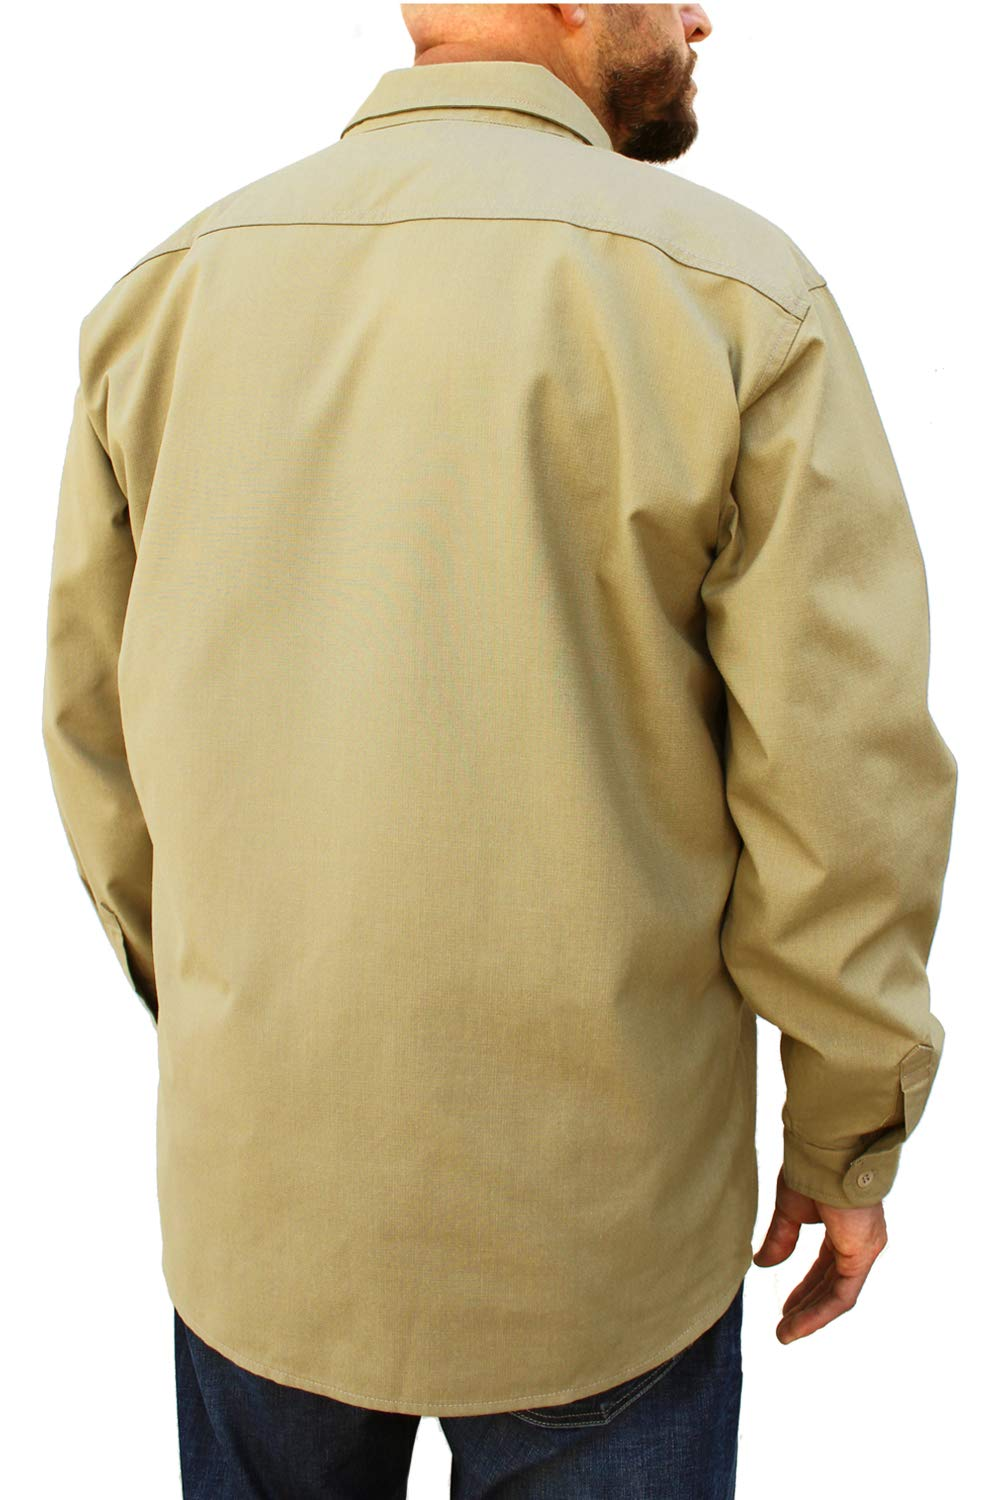 Benchmark FR Silver Bullet, 5.1 oz Ultra Lightweight FR Shirt, NPFA 2112 & CAT 2, Moisture Wicking, Men's FRC with 9 Cal rating, Made in USA, Advanced FR Materials, Beige, Large by Benchmark FR (Image #5)